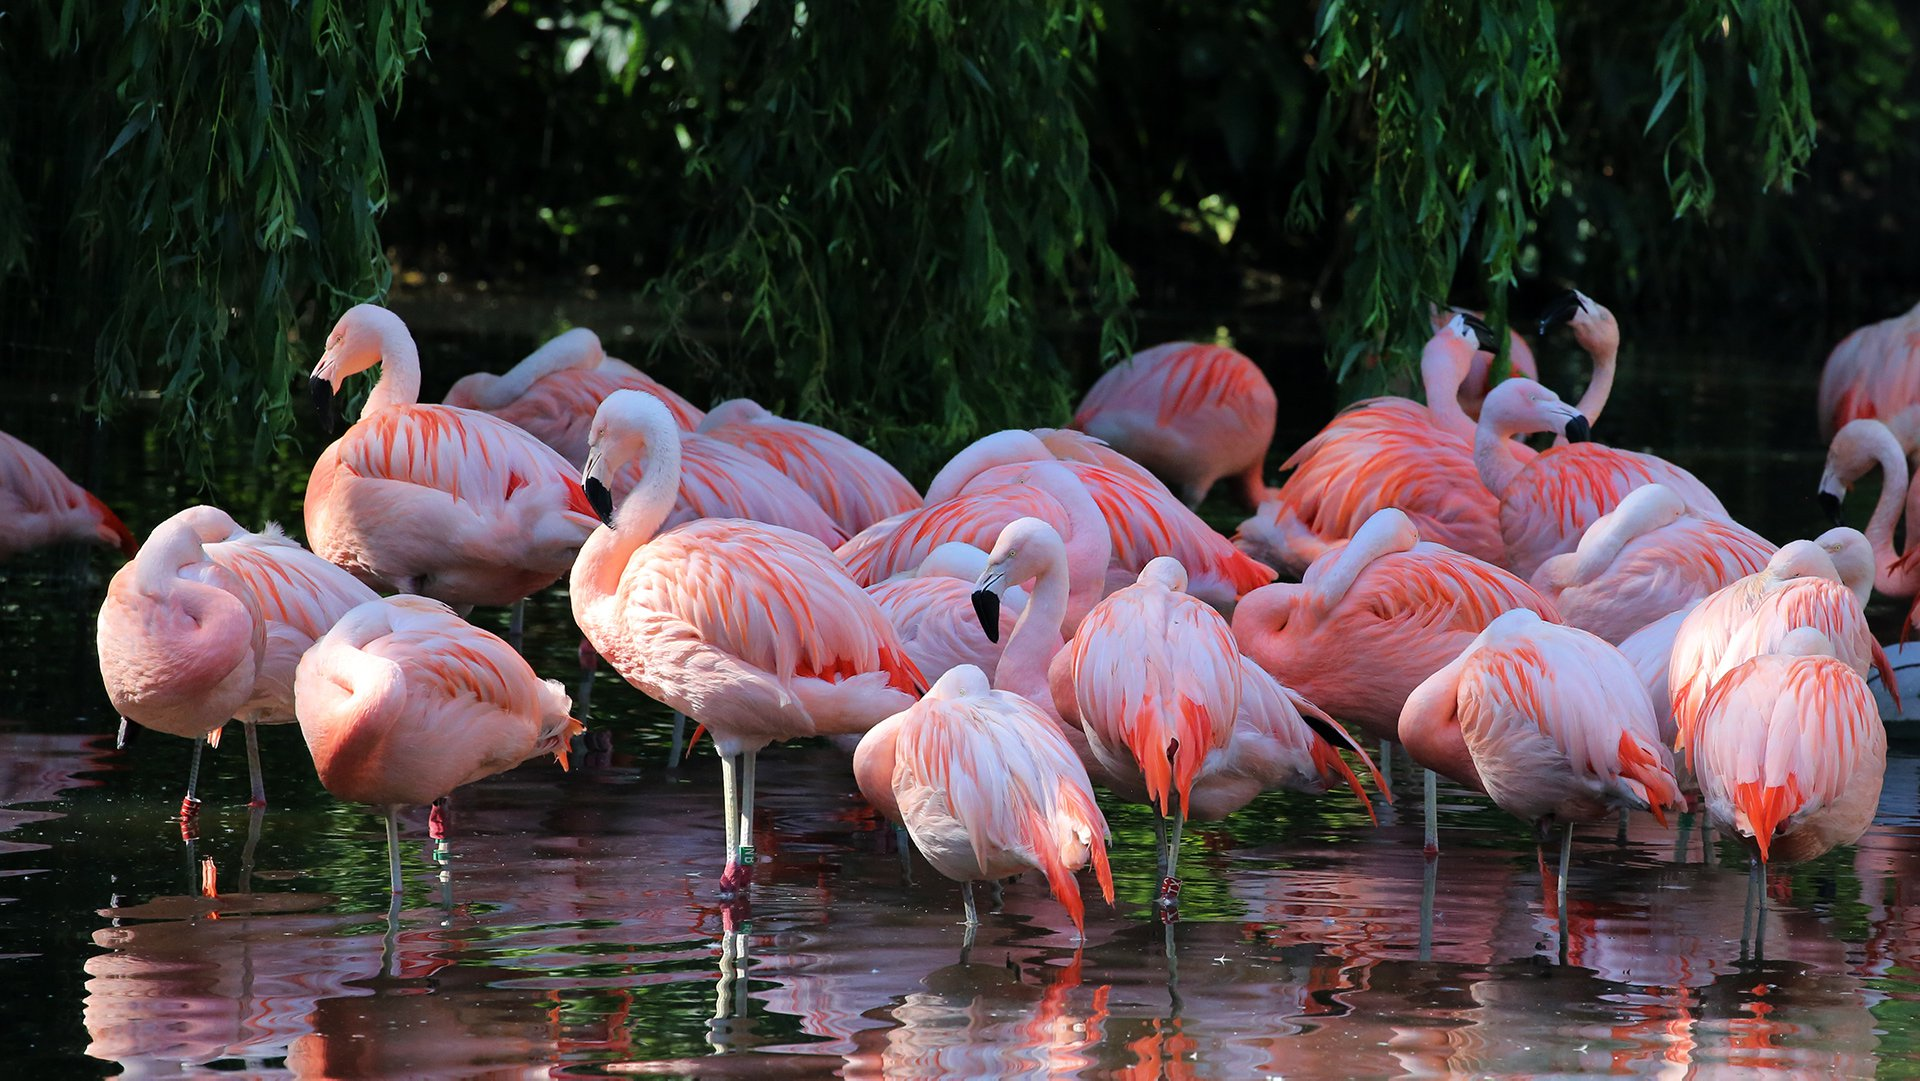 Chileense flamingos_2018_1920x1080.jpg